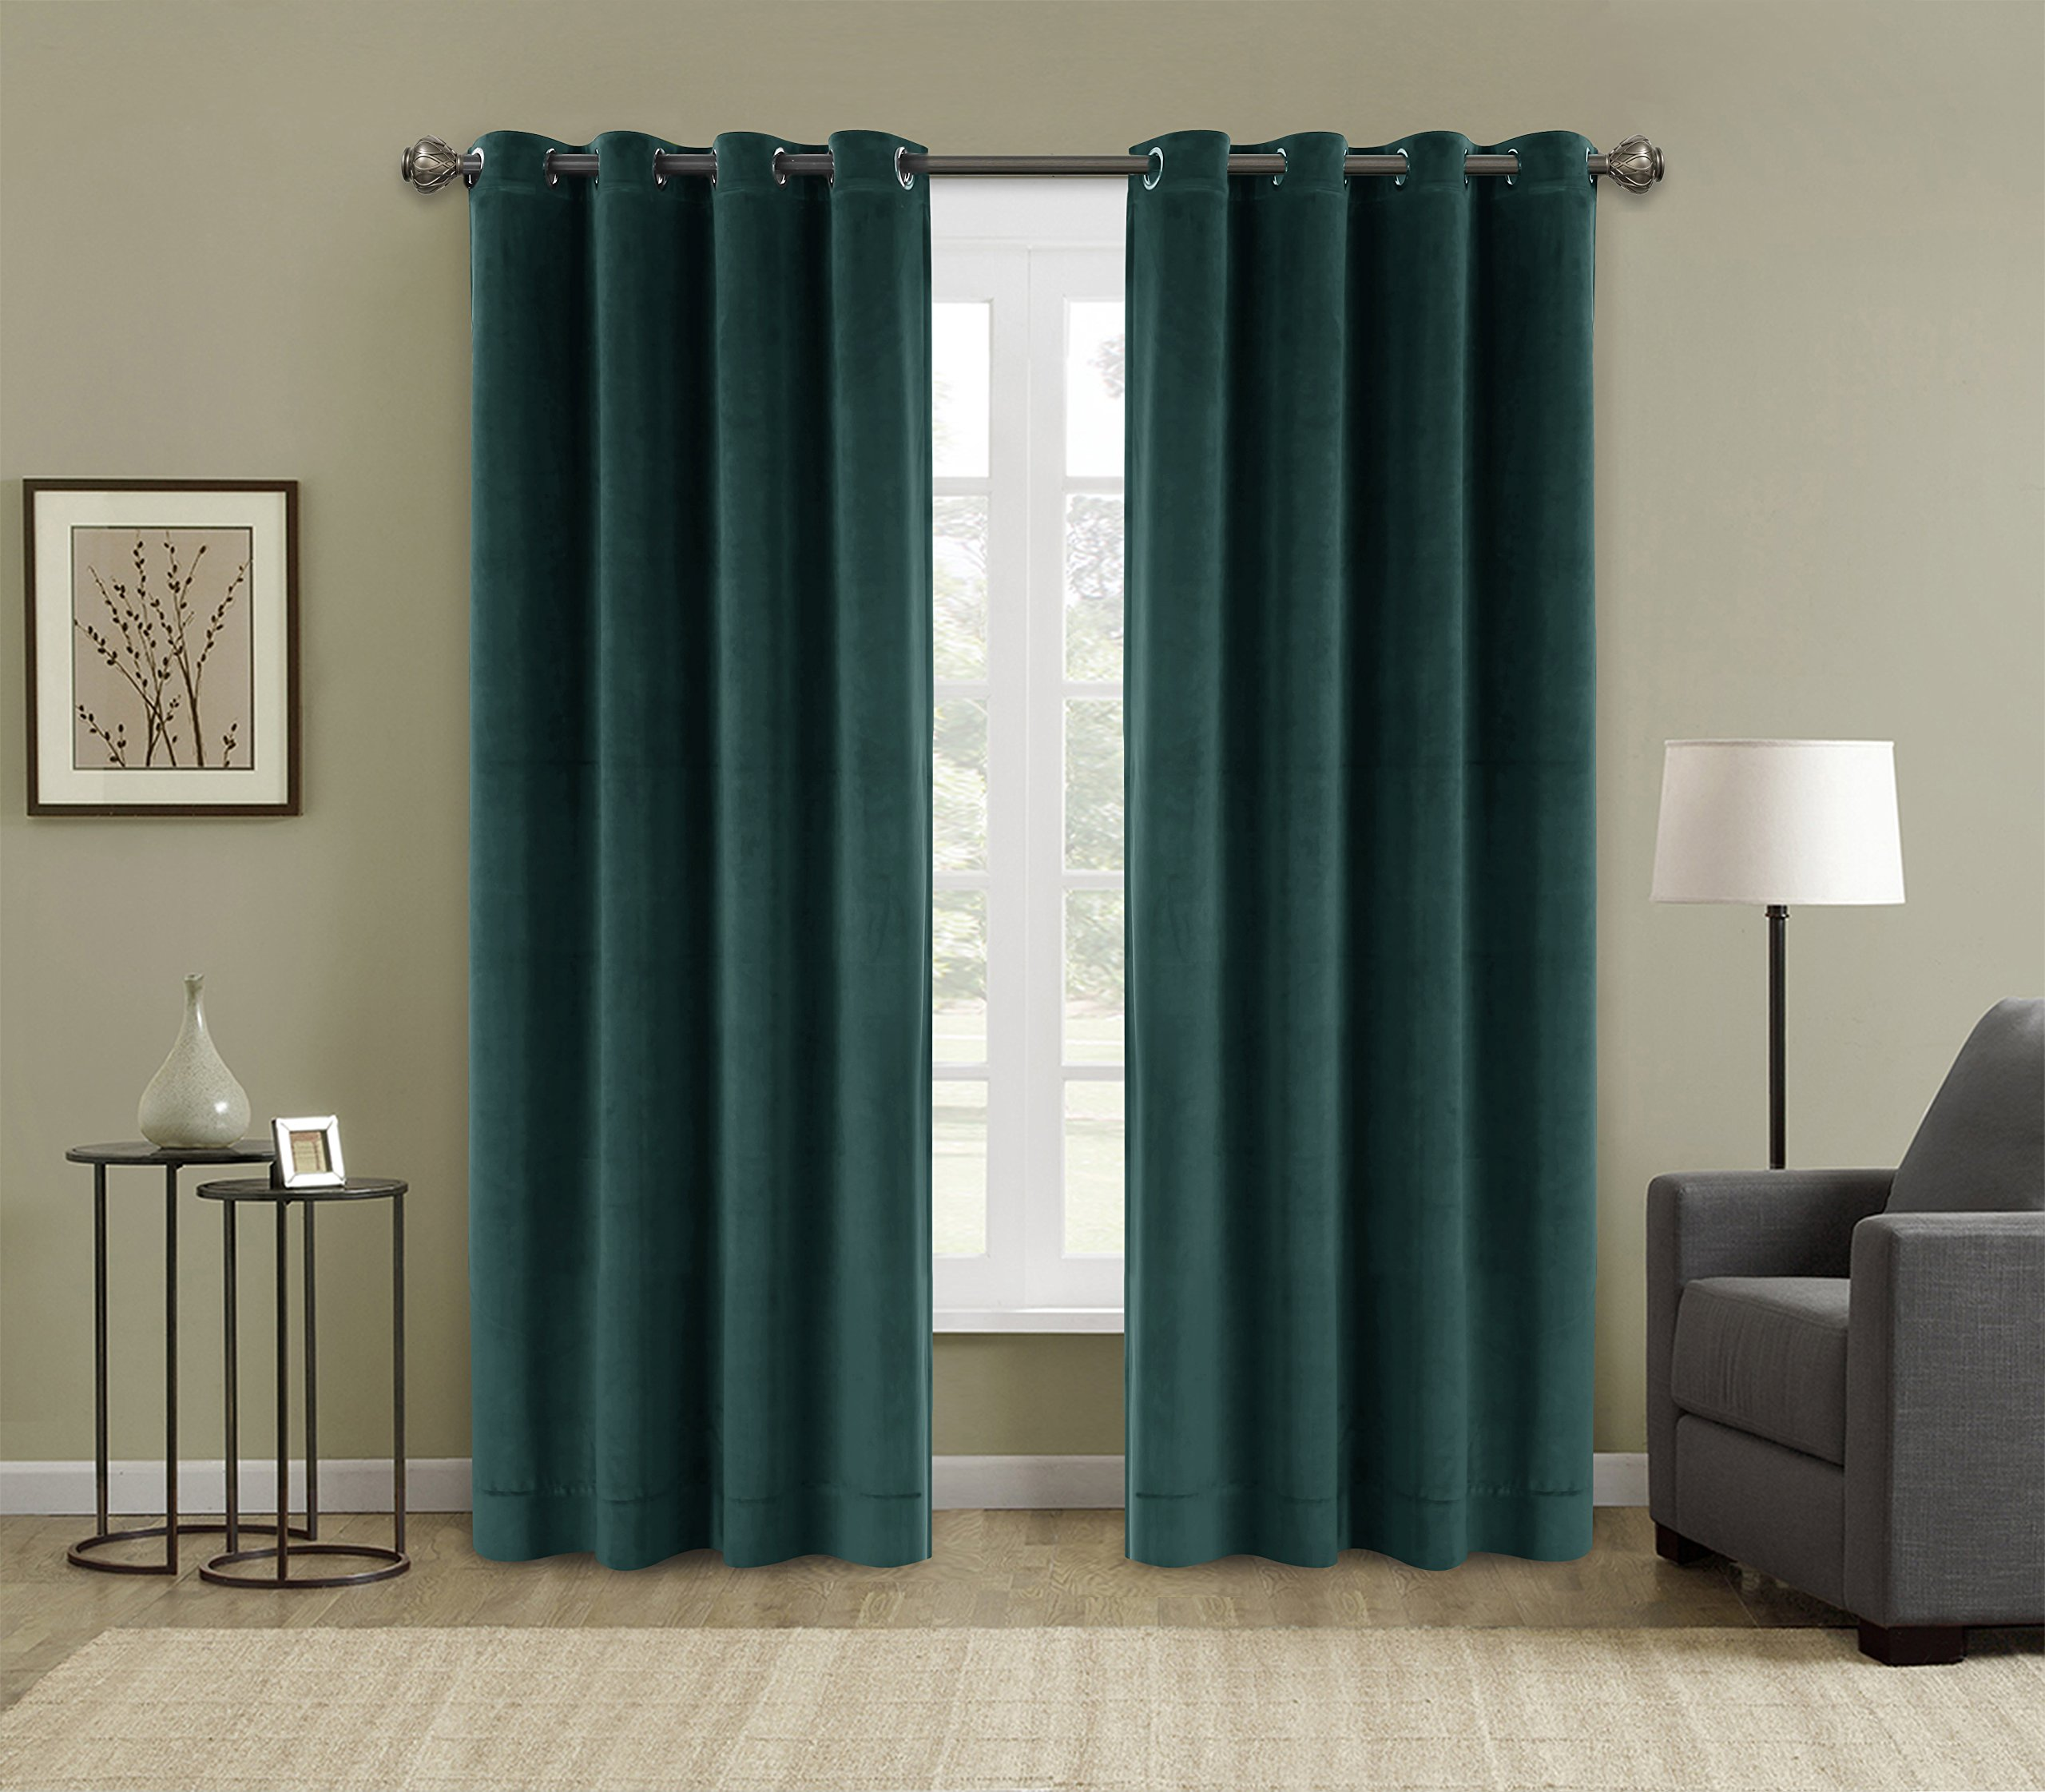 FirstHomer Solid Heavy Velvet Curtain Drape Panel Blackout Super Soft Handfeel Luxury Nickle Grommet Everglade Teal 50W By 63L Inch (Set of 2 Panels)Collection Theater| Bedroom| Living Room| Hotel